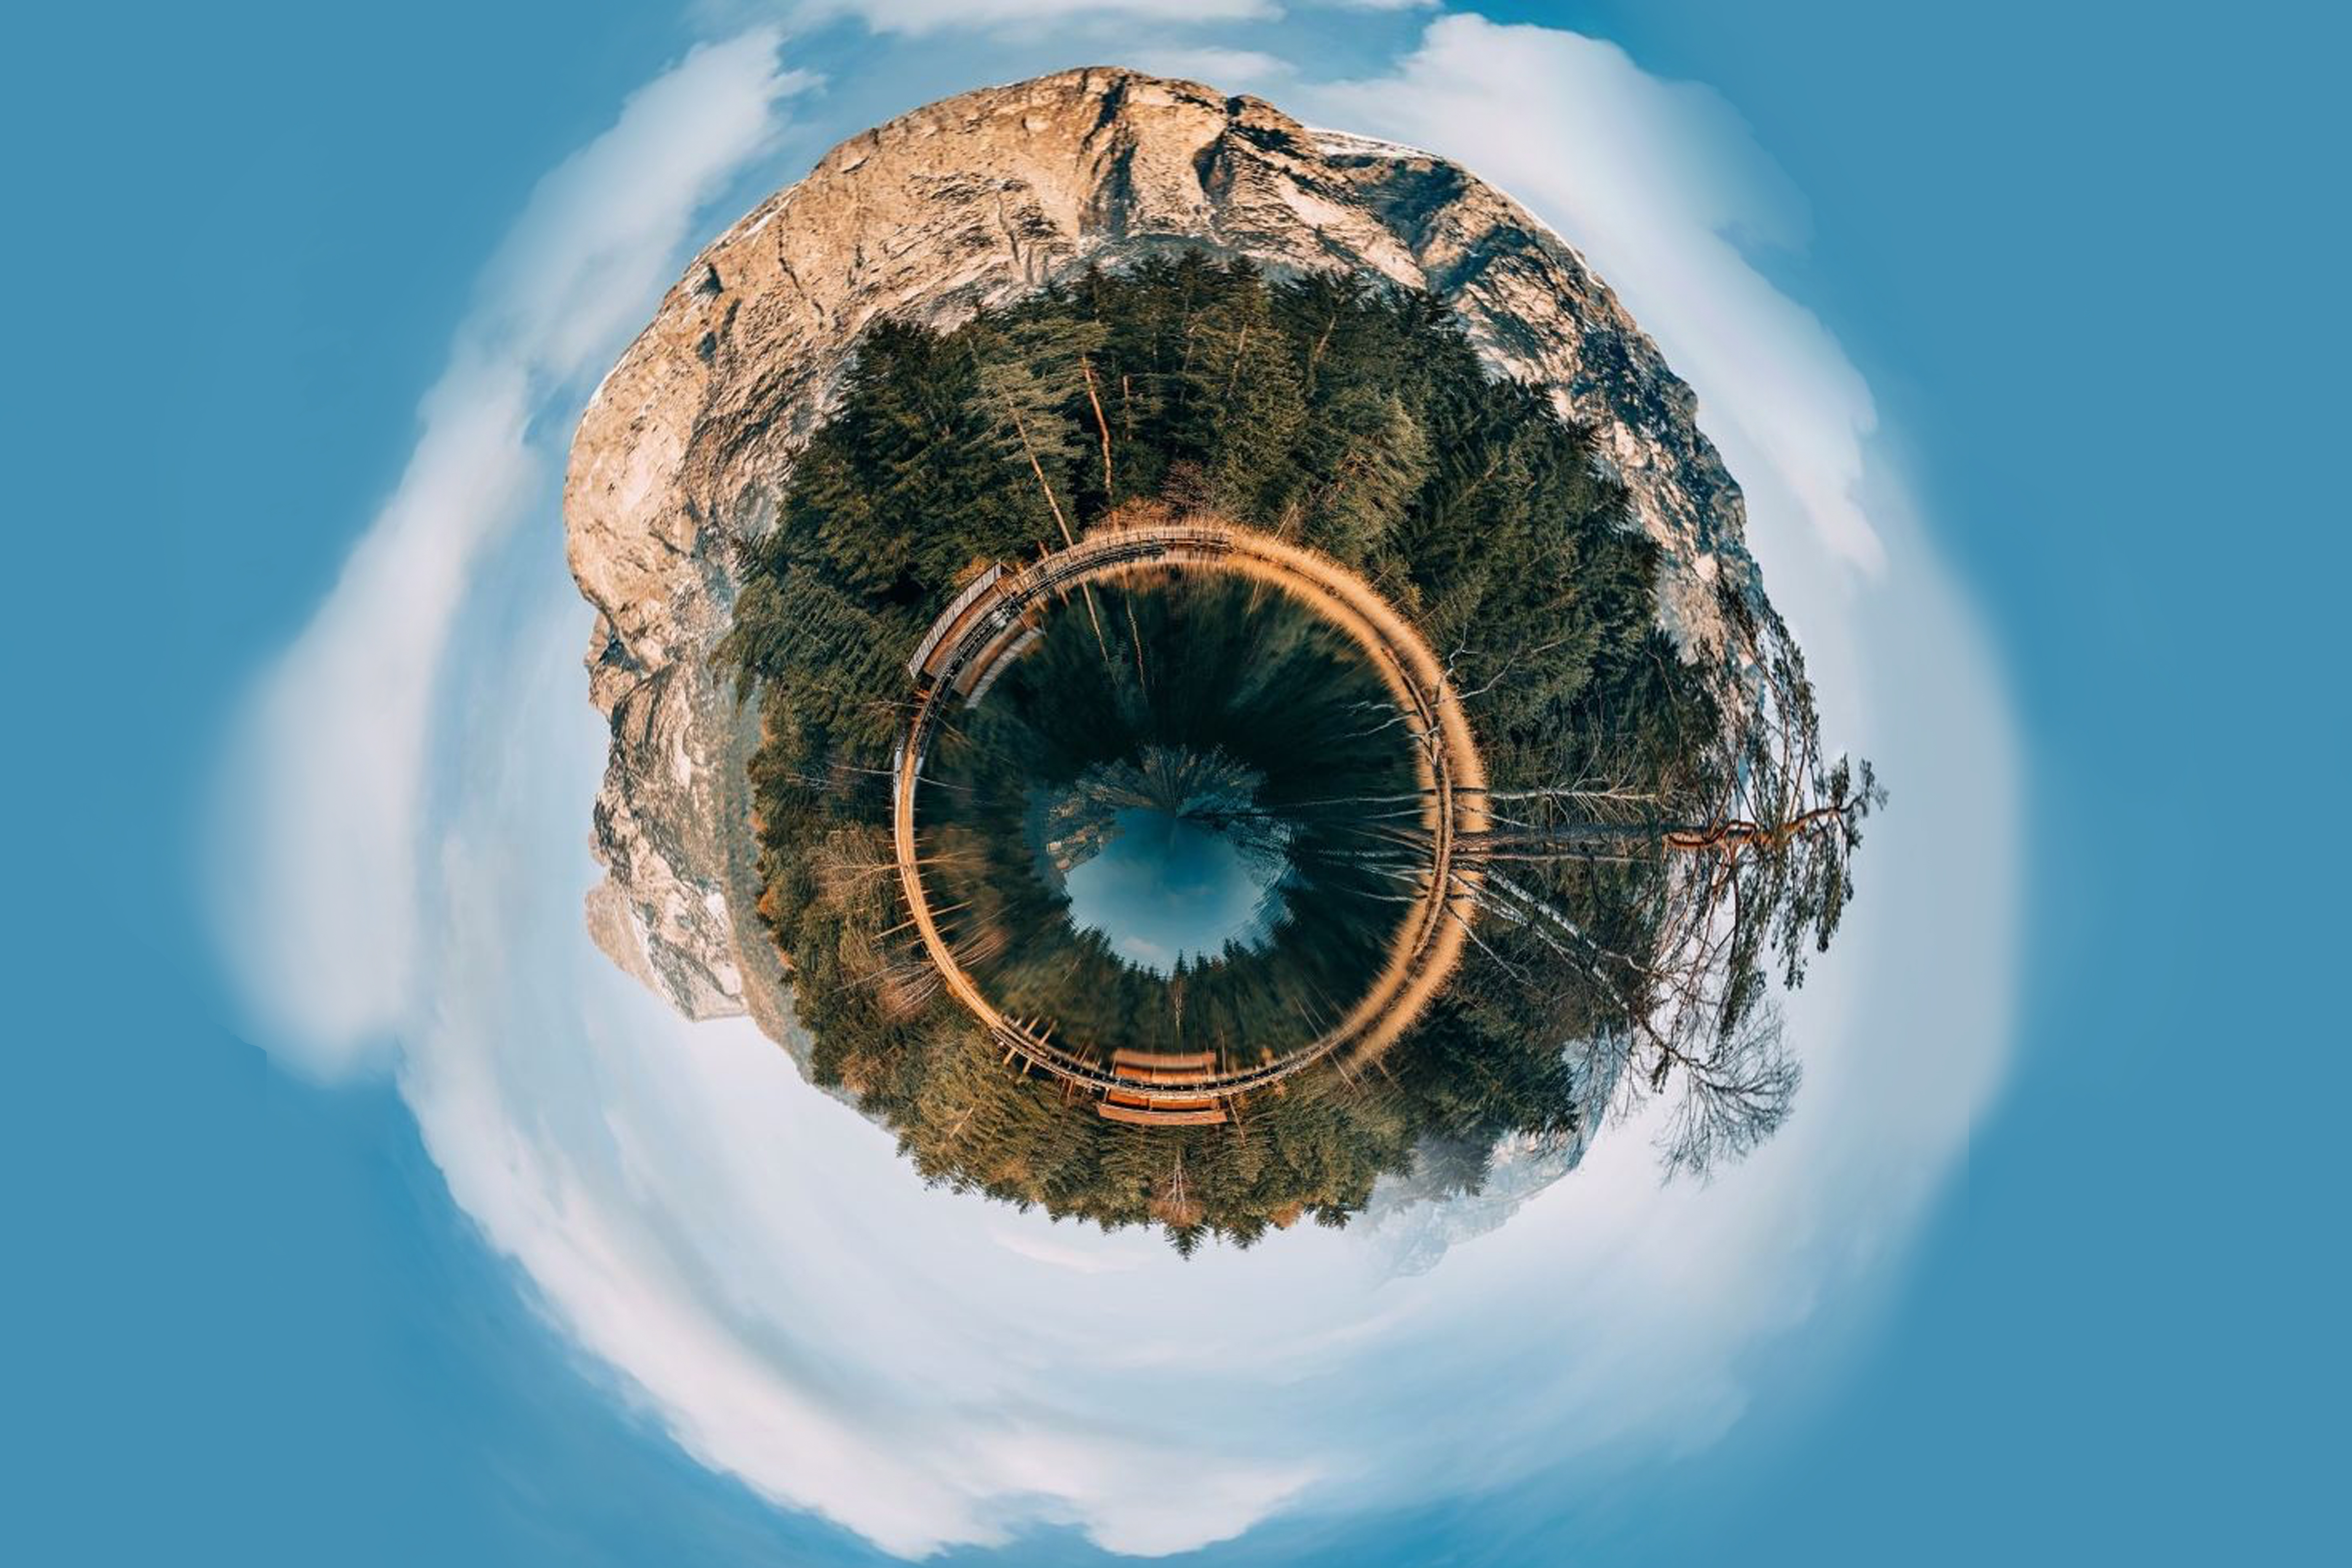 Photo made by tiny planet effect